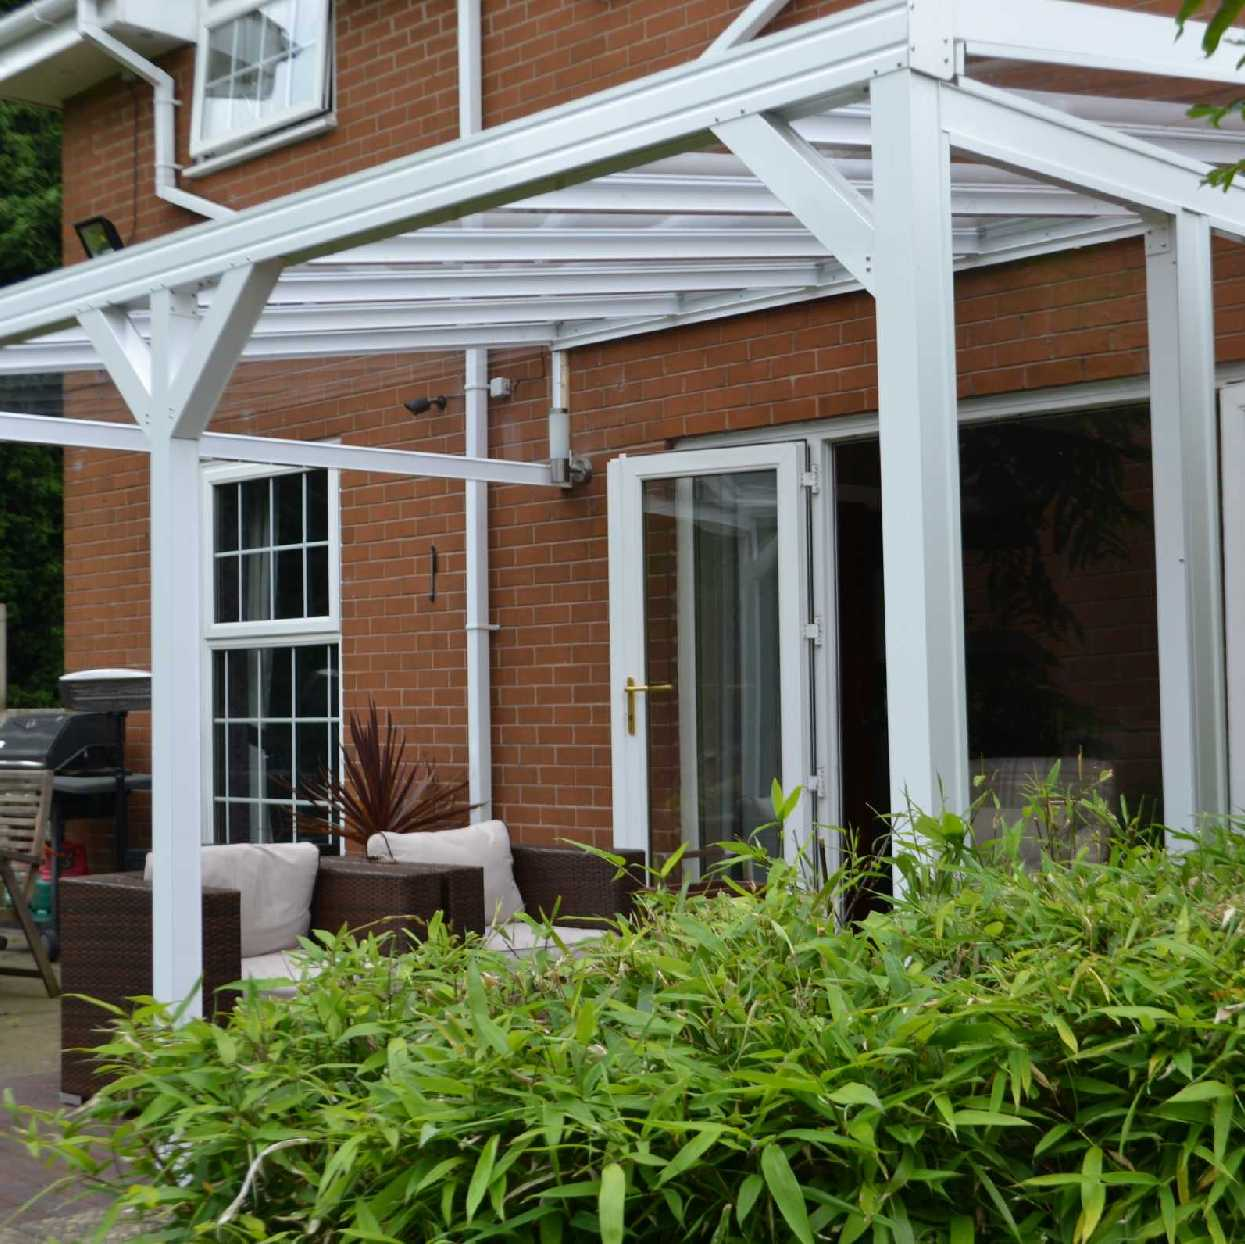 Omega Smart Lean-To Canopy with 6mm Glass Clear Plate Polycarbonate Glazing - 4.2m (W) x 1.5m (P), (3) Supporting Posts from Omega Build